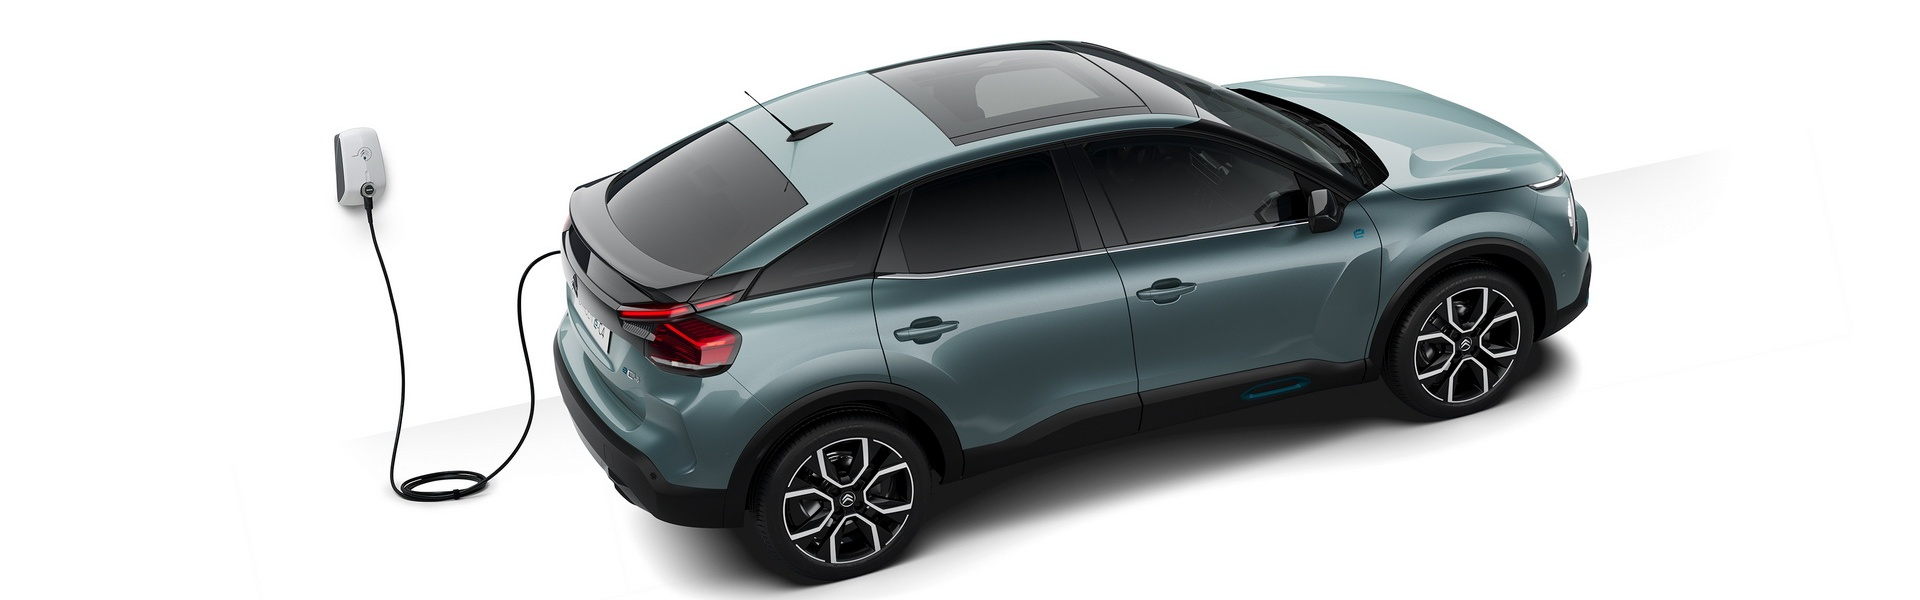 citroen-c4-and-e-c4-previewed-3.jpg